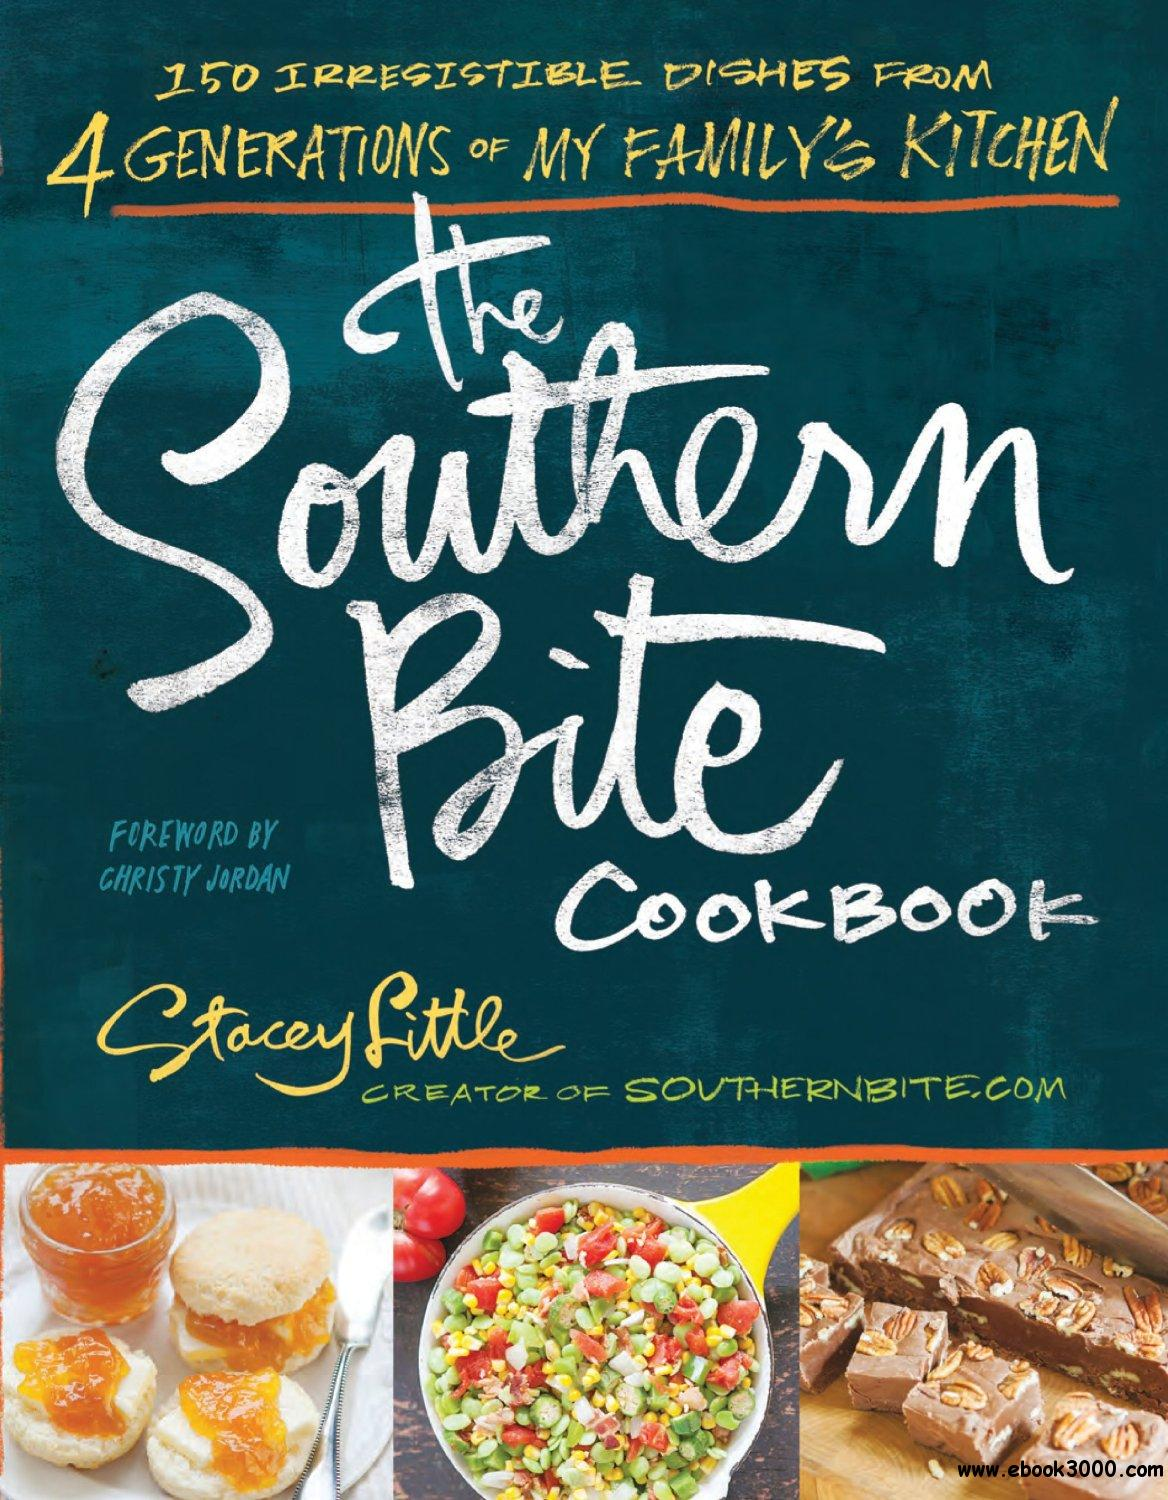 The Southern Bite Cookbook: 150 Irresistible Dishes from 4 Generations of My Family's Kitchen free download